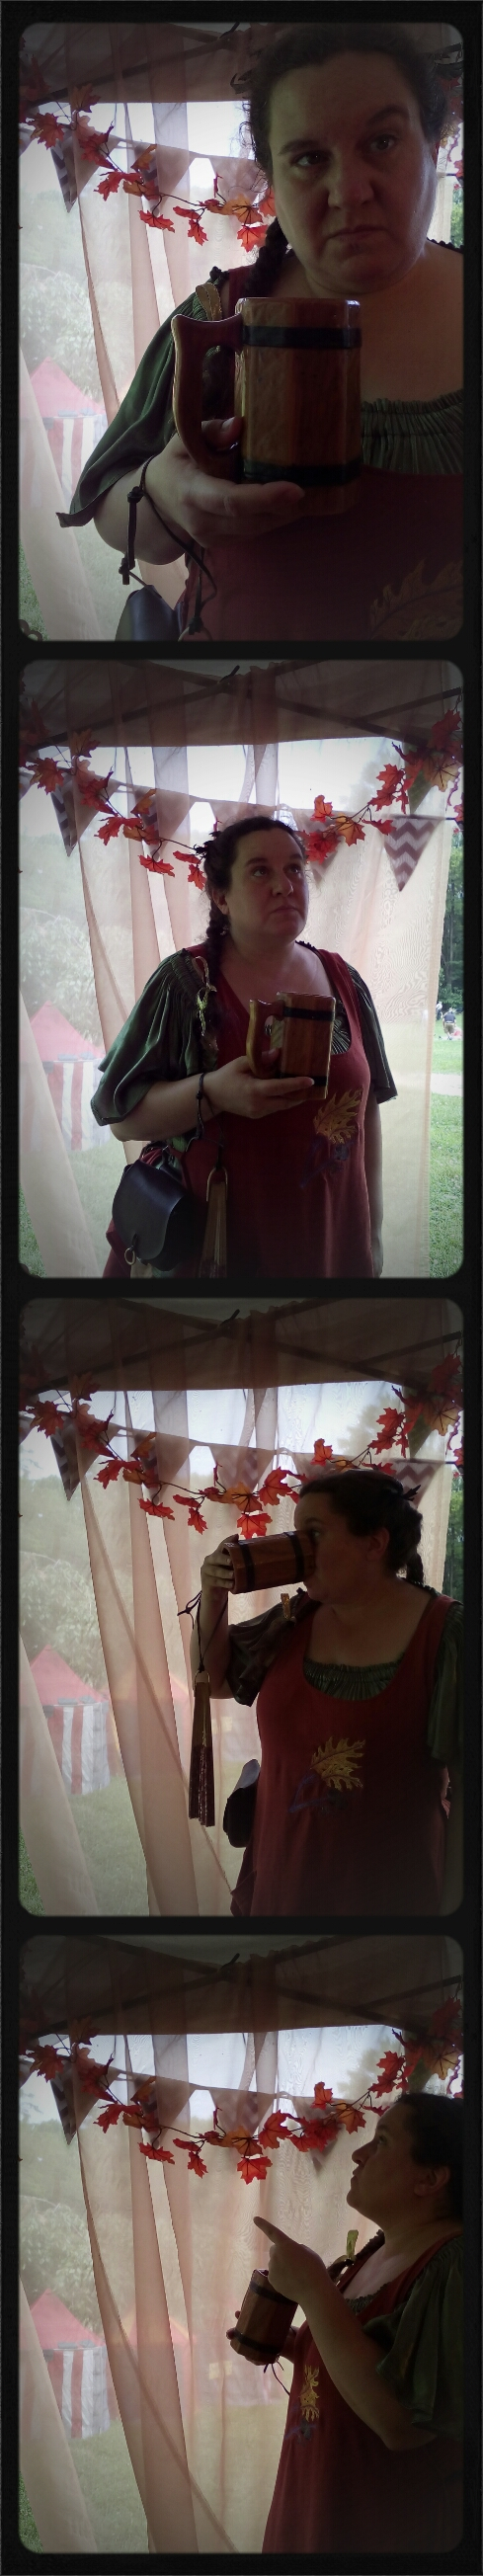 Pocketbooth_20150613155908